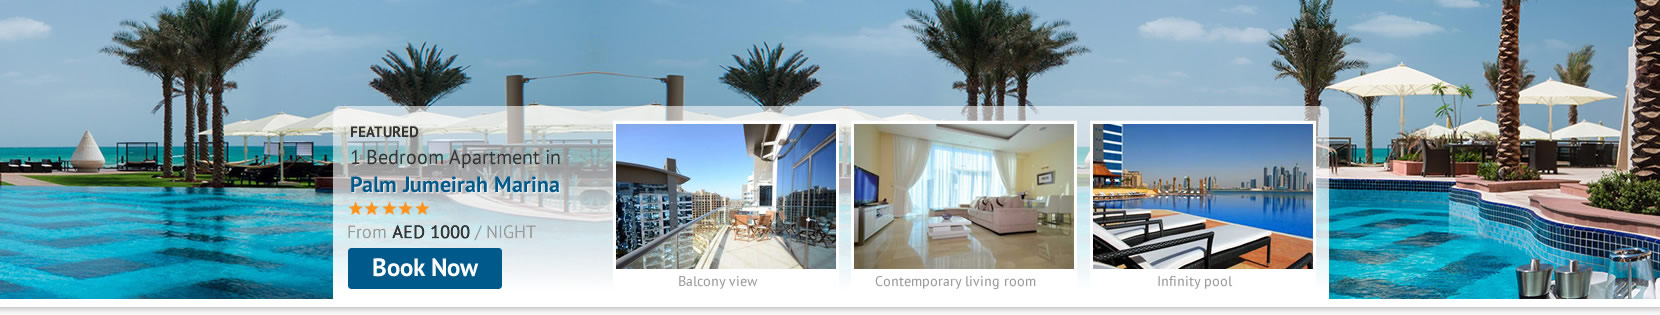 Book your stay at the Palm Jumeirah Marina and save when you stay Self-Catering